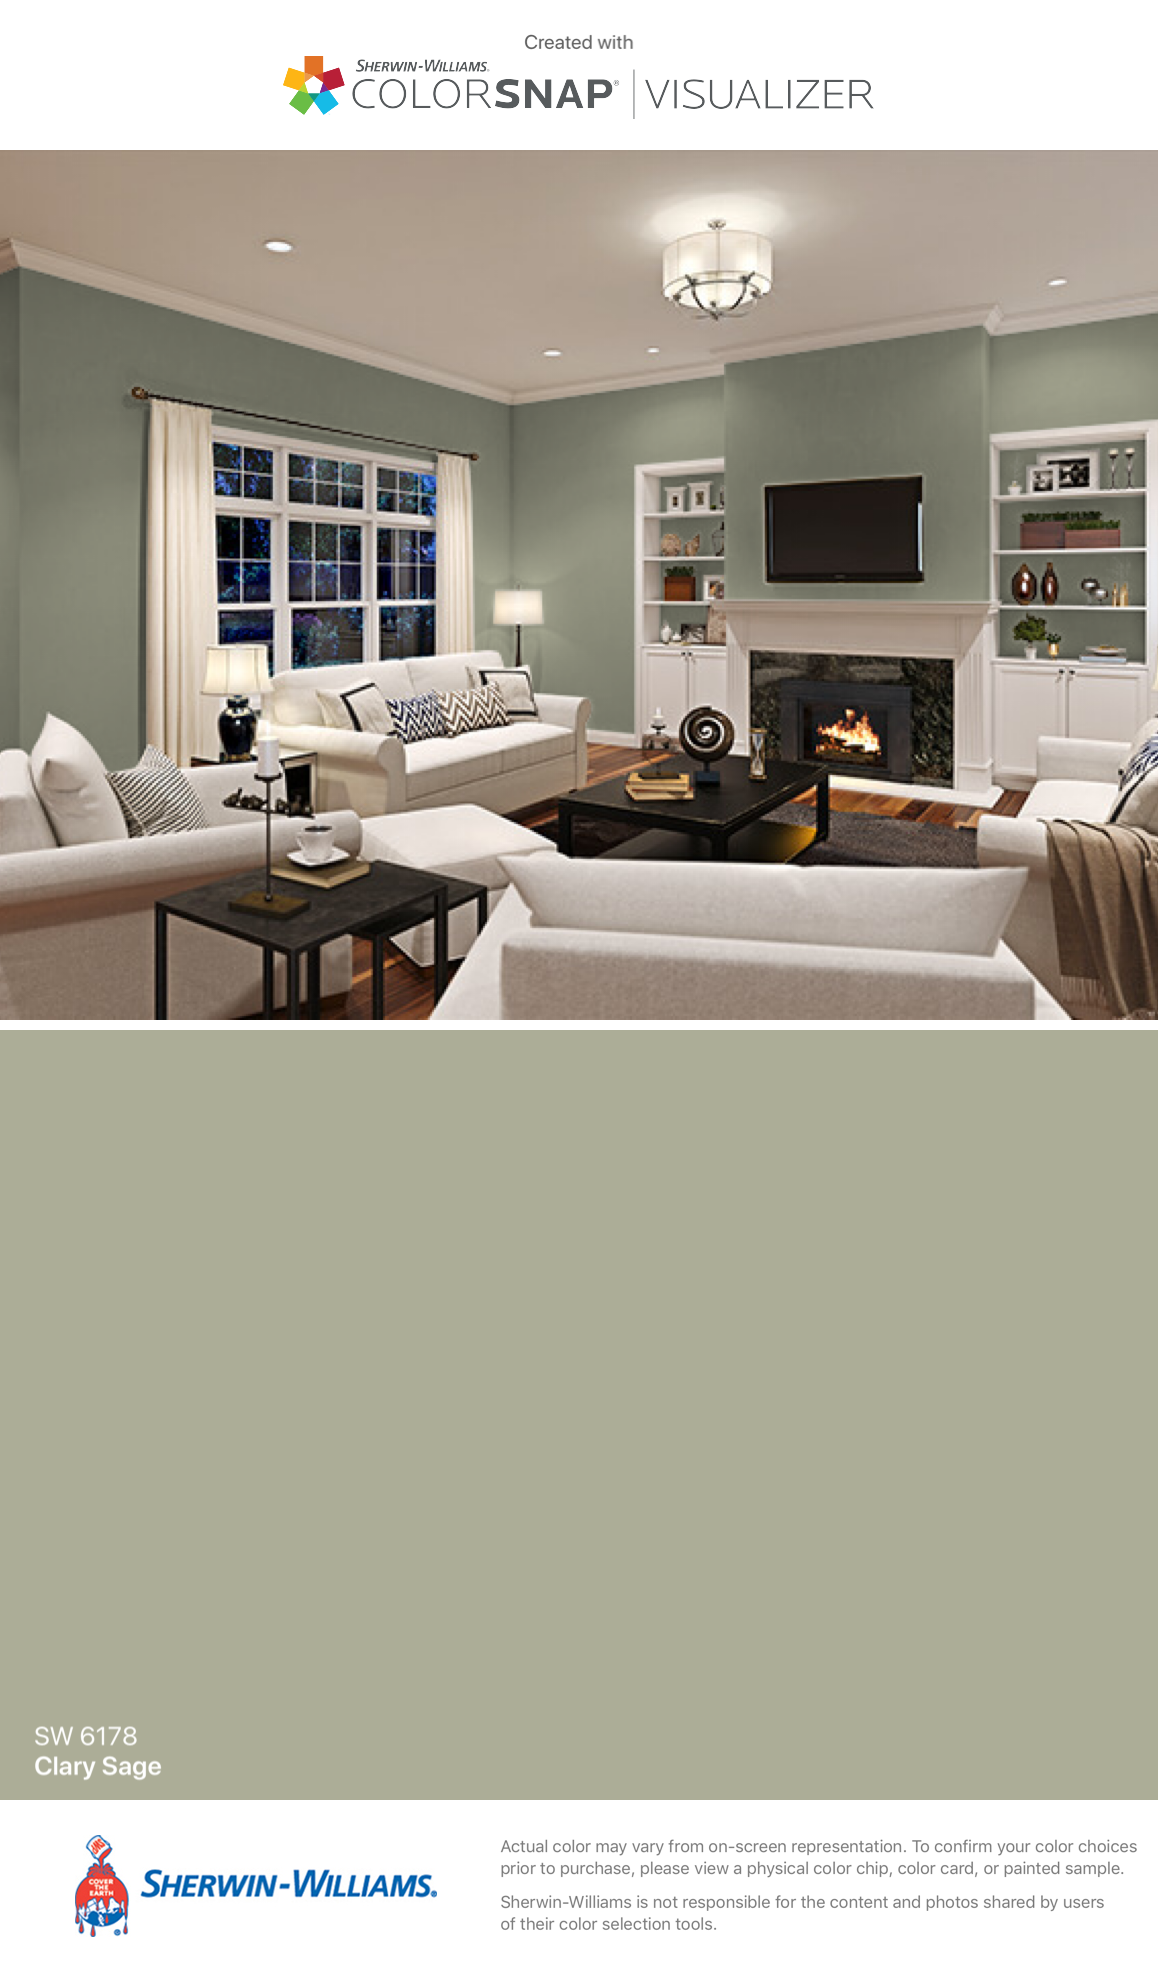 I Found This Color With Colorsnap Visualizer For Iphone By Sherwin Williams Clary Sage Living Room Colors Sherwin Williams Paint Colors Light Green Bedrooms